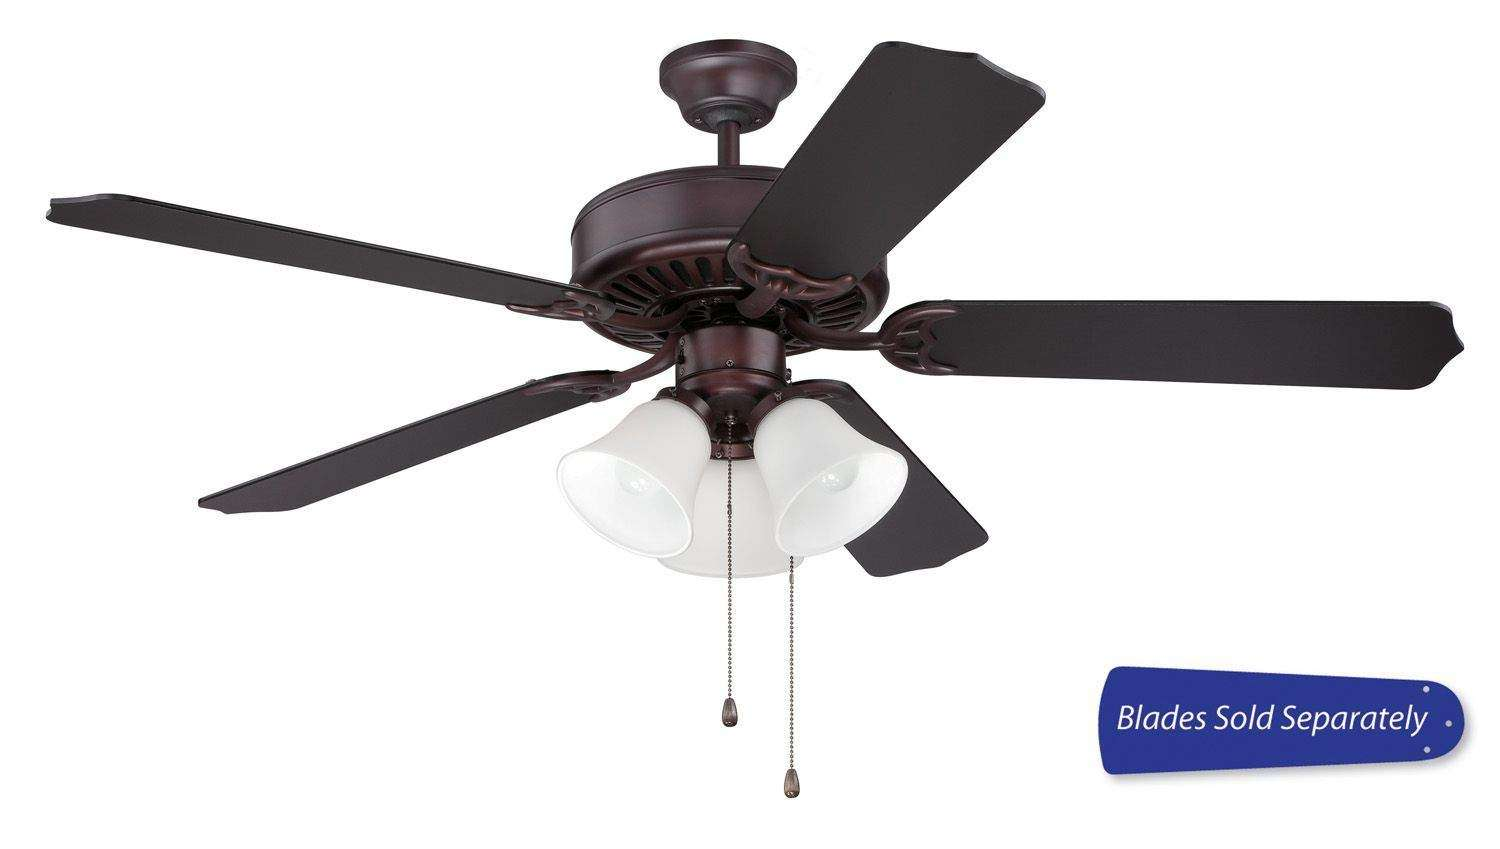 Craftmade Pro Builder 205 Ceiling Fan Model CF-C205OB in Oiled Bronze